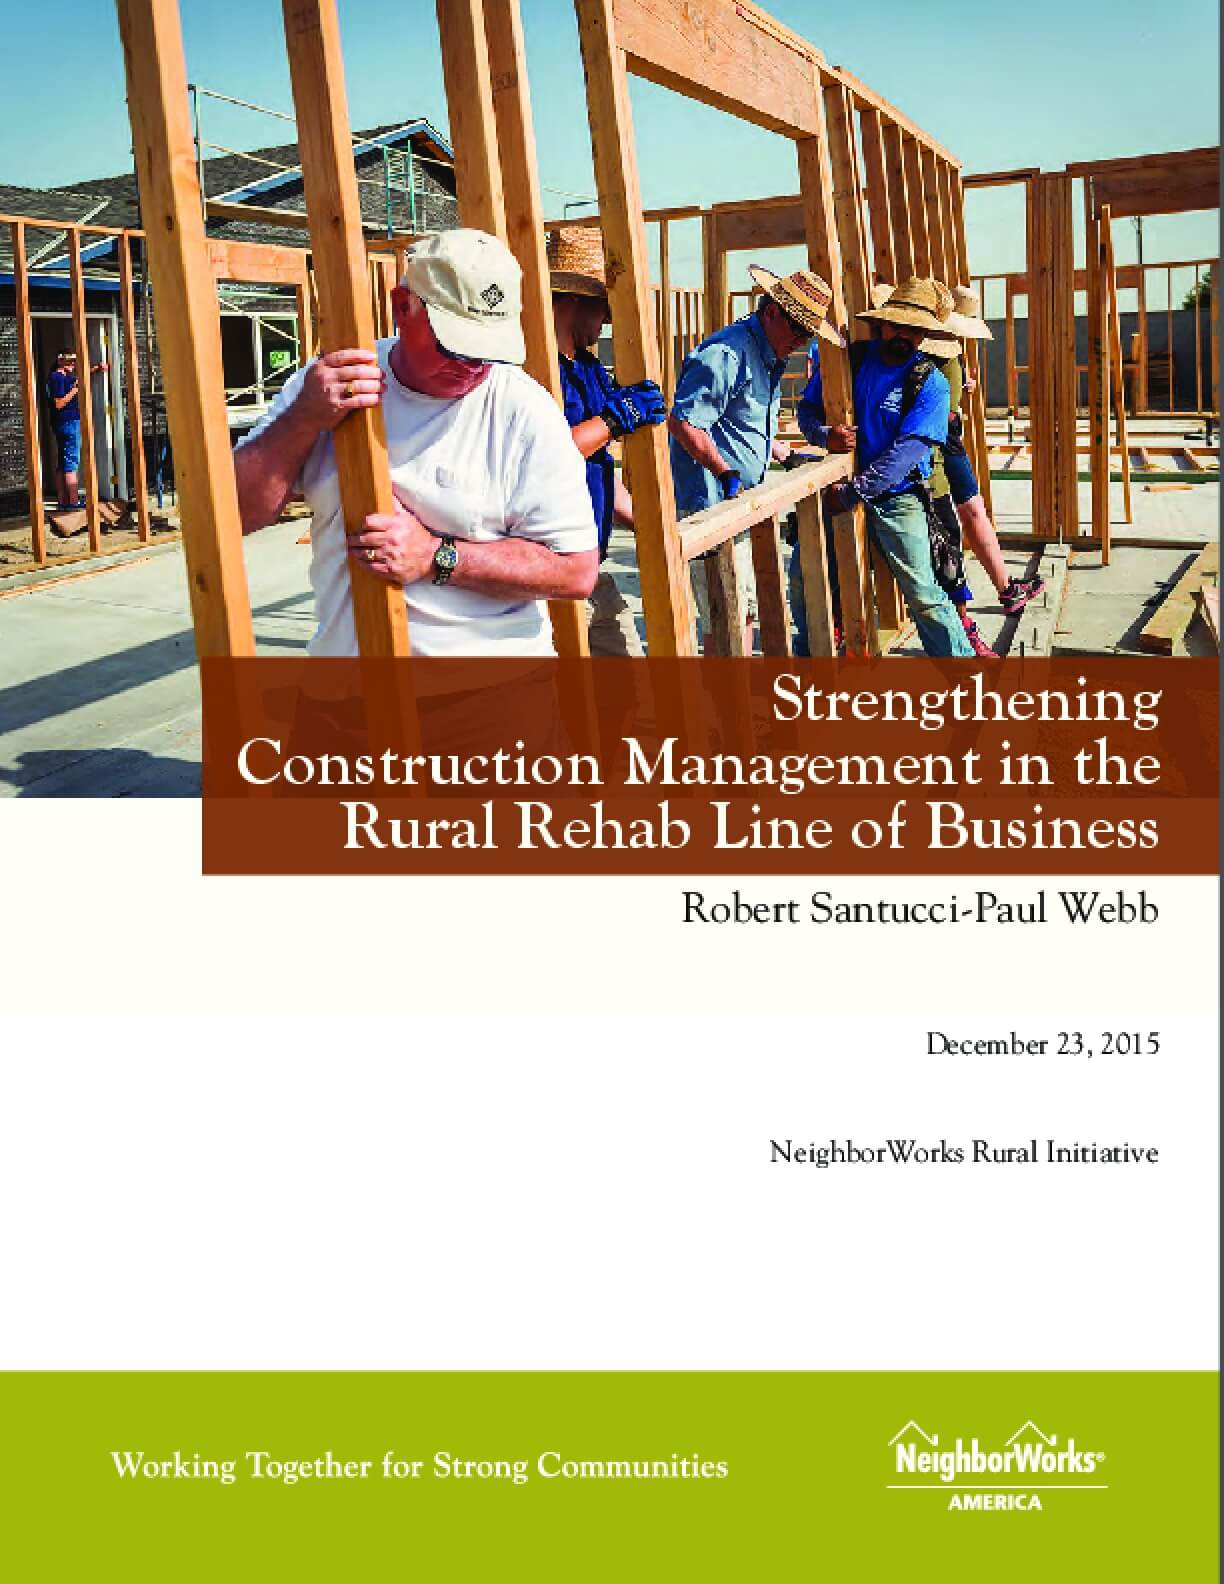 Strengthening Construction Management in the Rural Rehab Line of Business